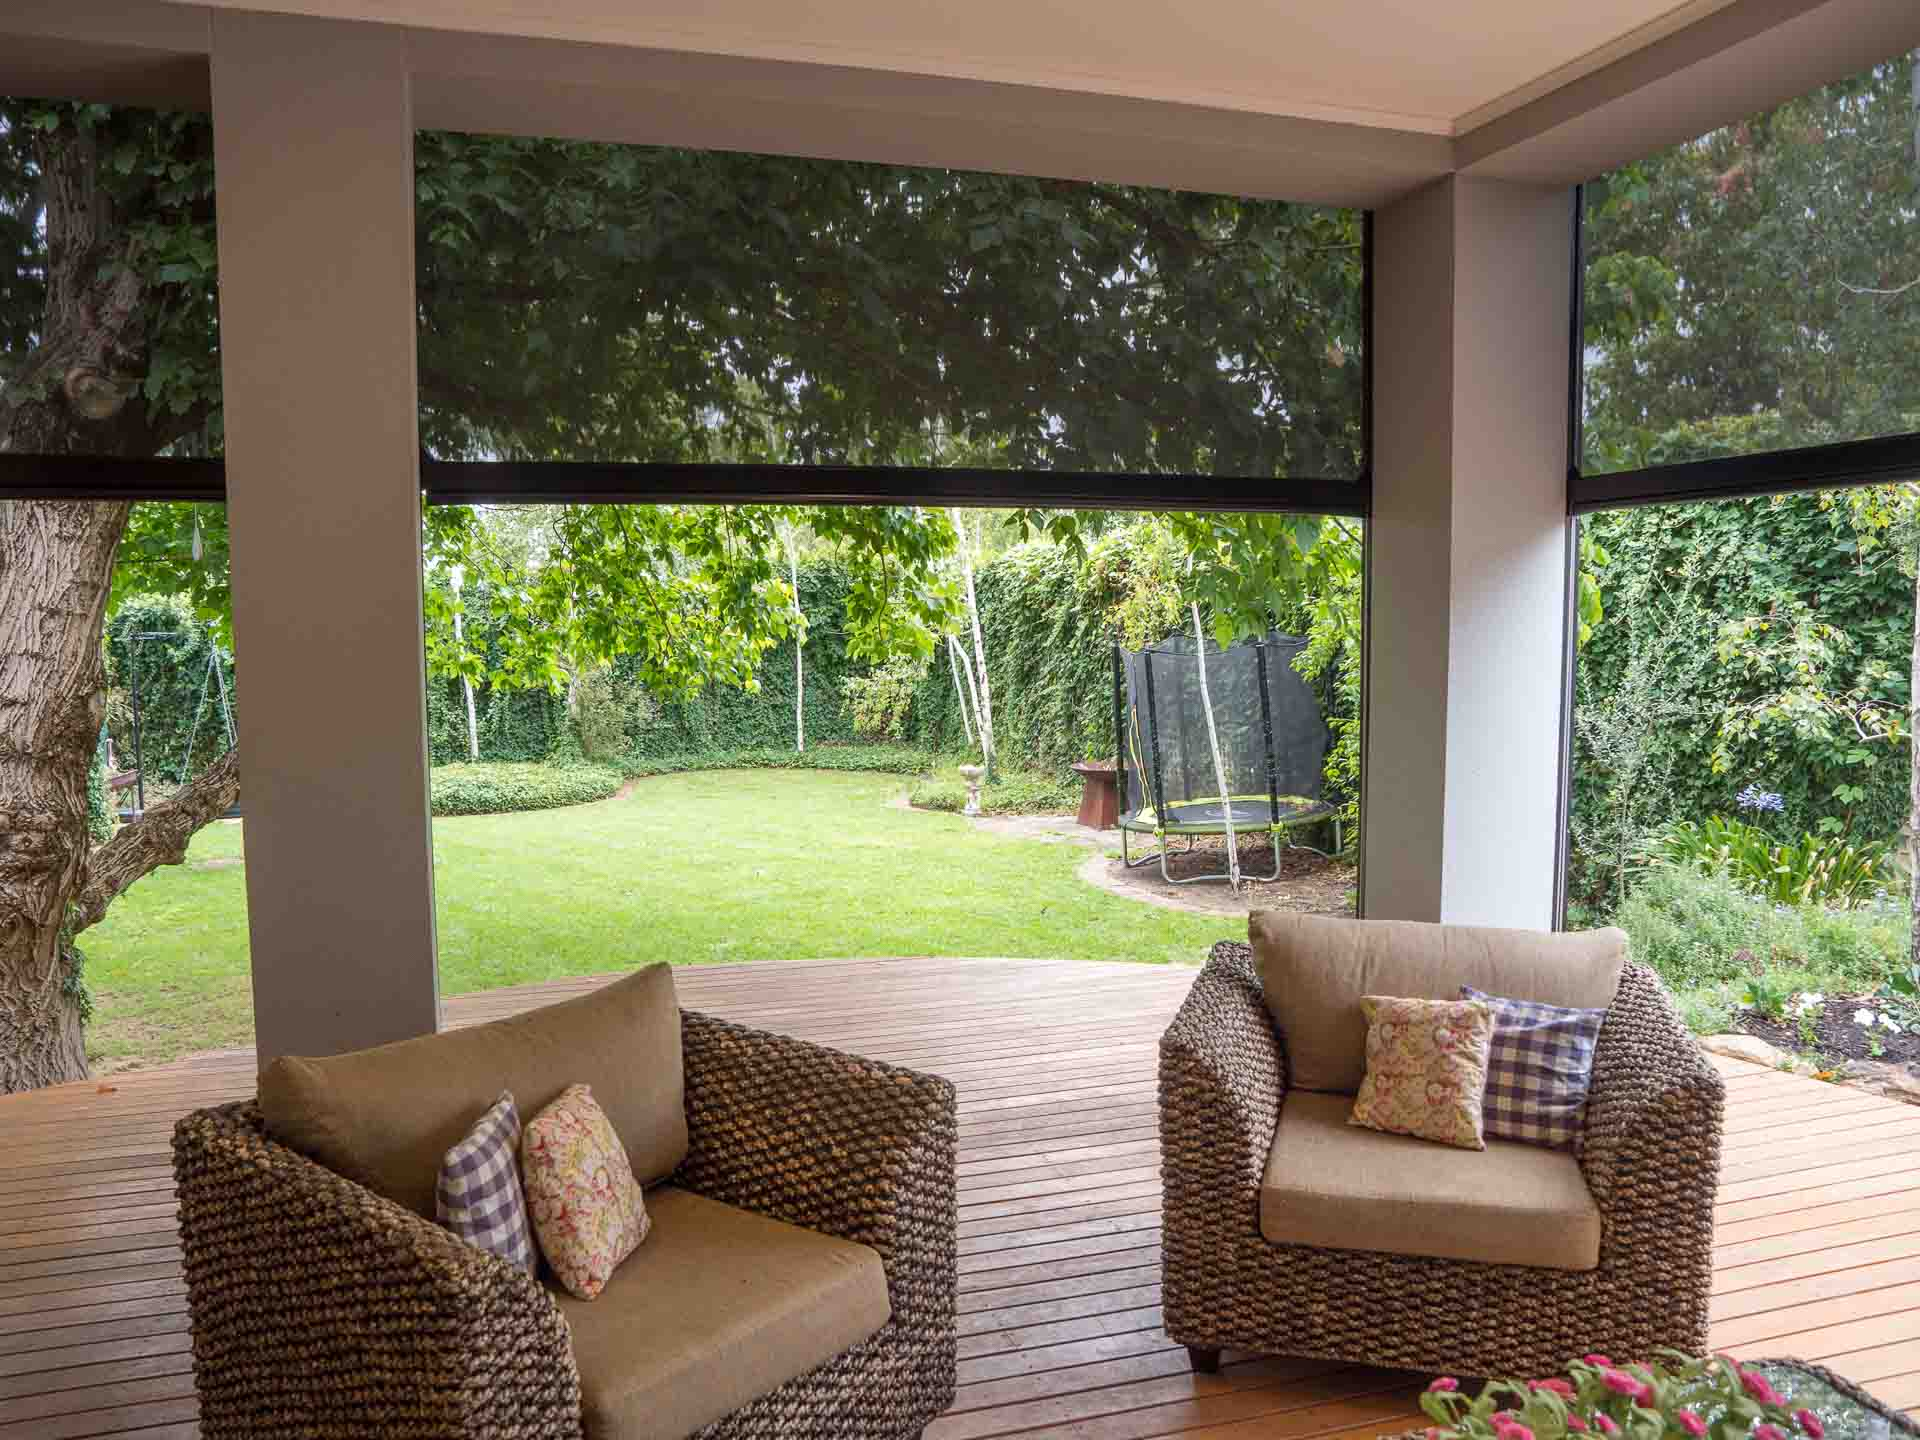 Make sure your outdoor roller blinds last as long as possible with these handy tips - Wind them up or keep them down.